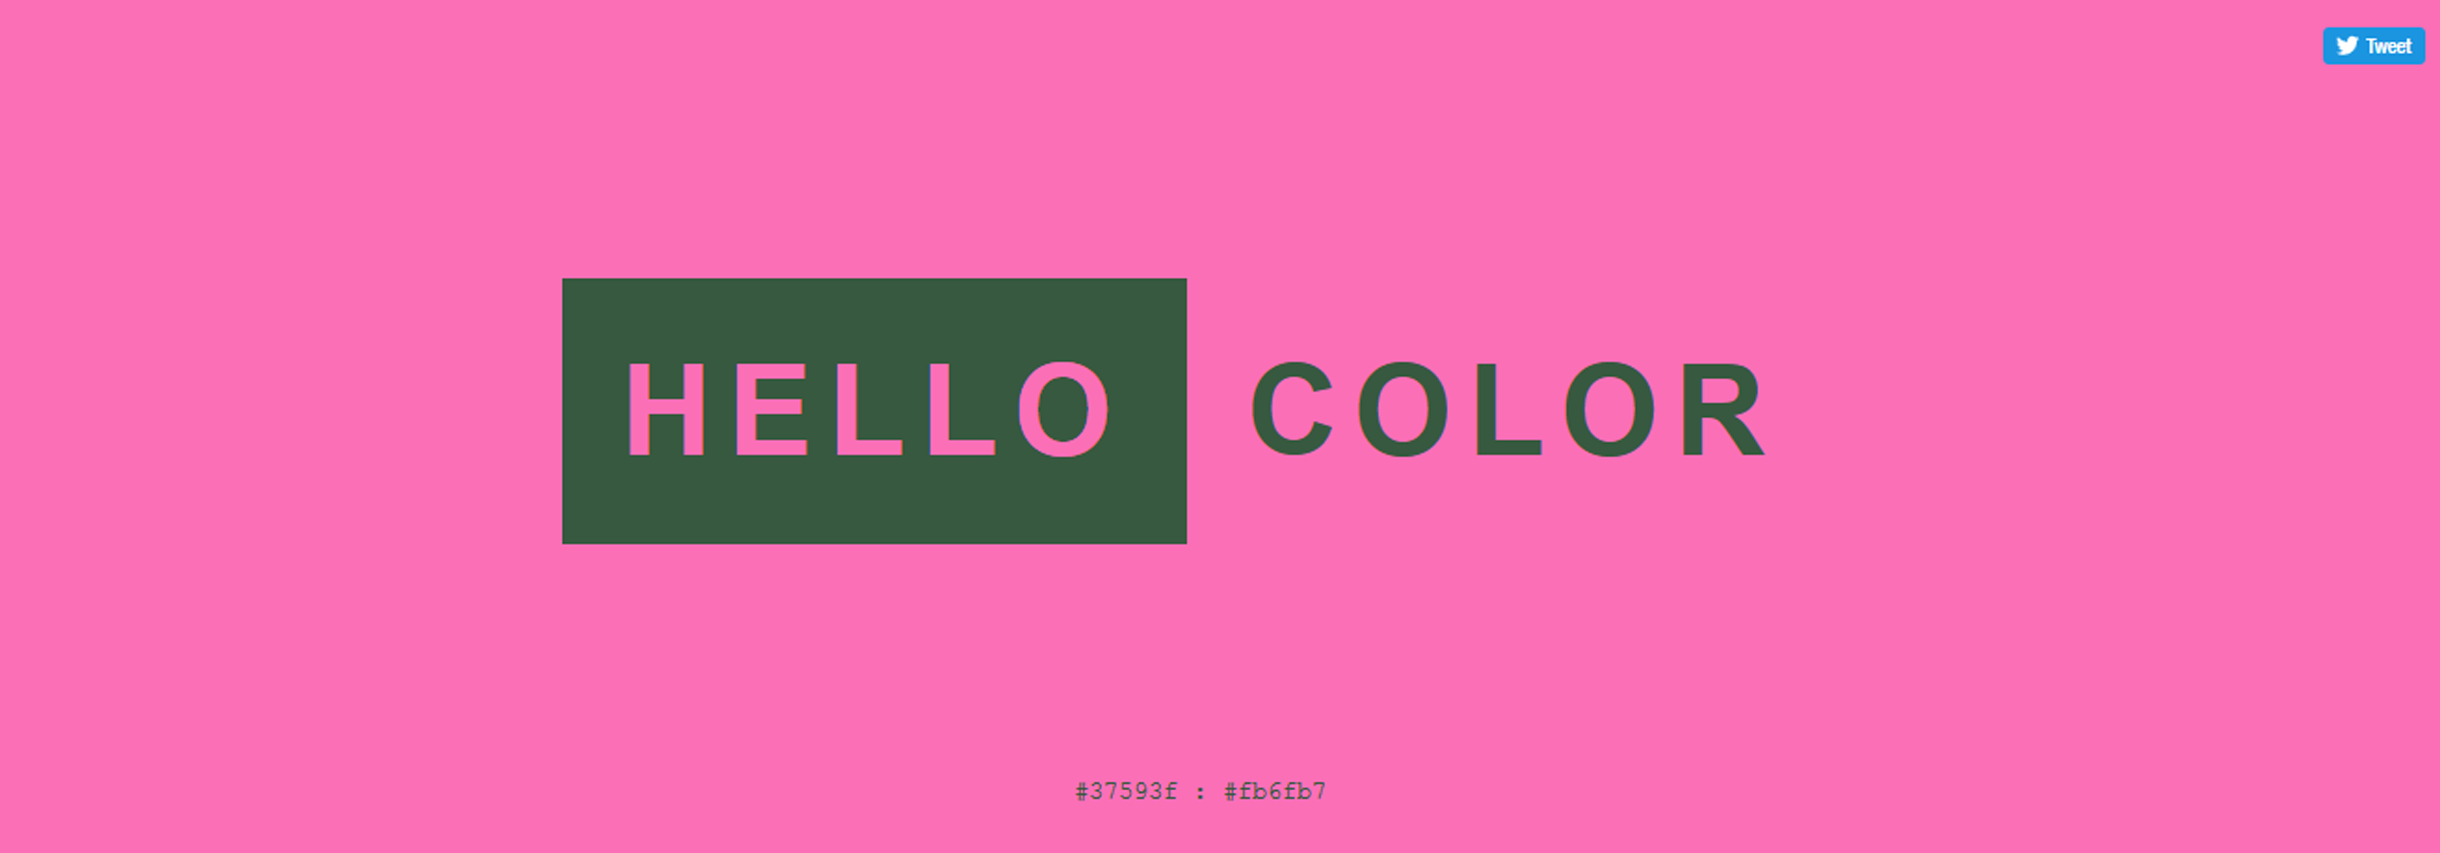 Hello color.png